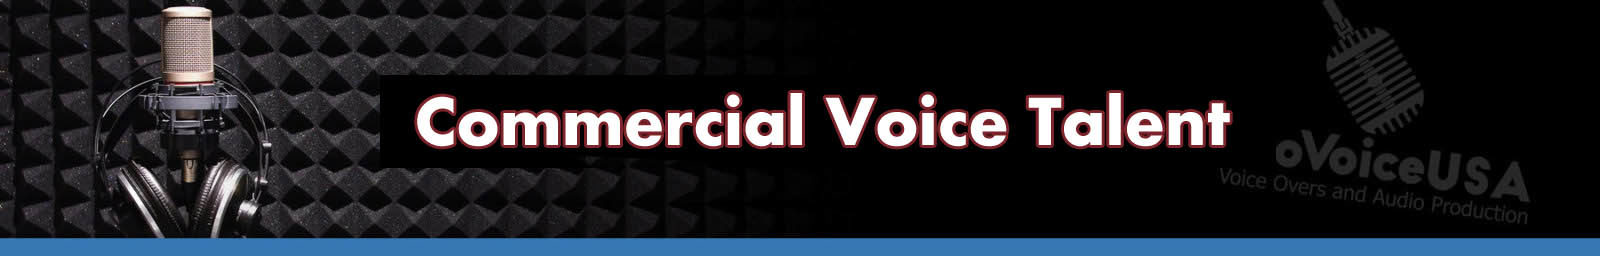 Commercial Voice Talent header